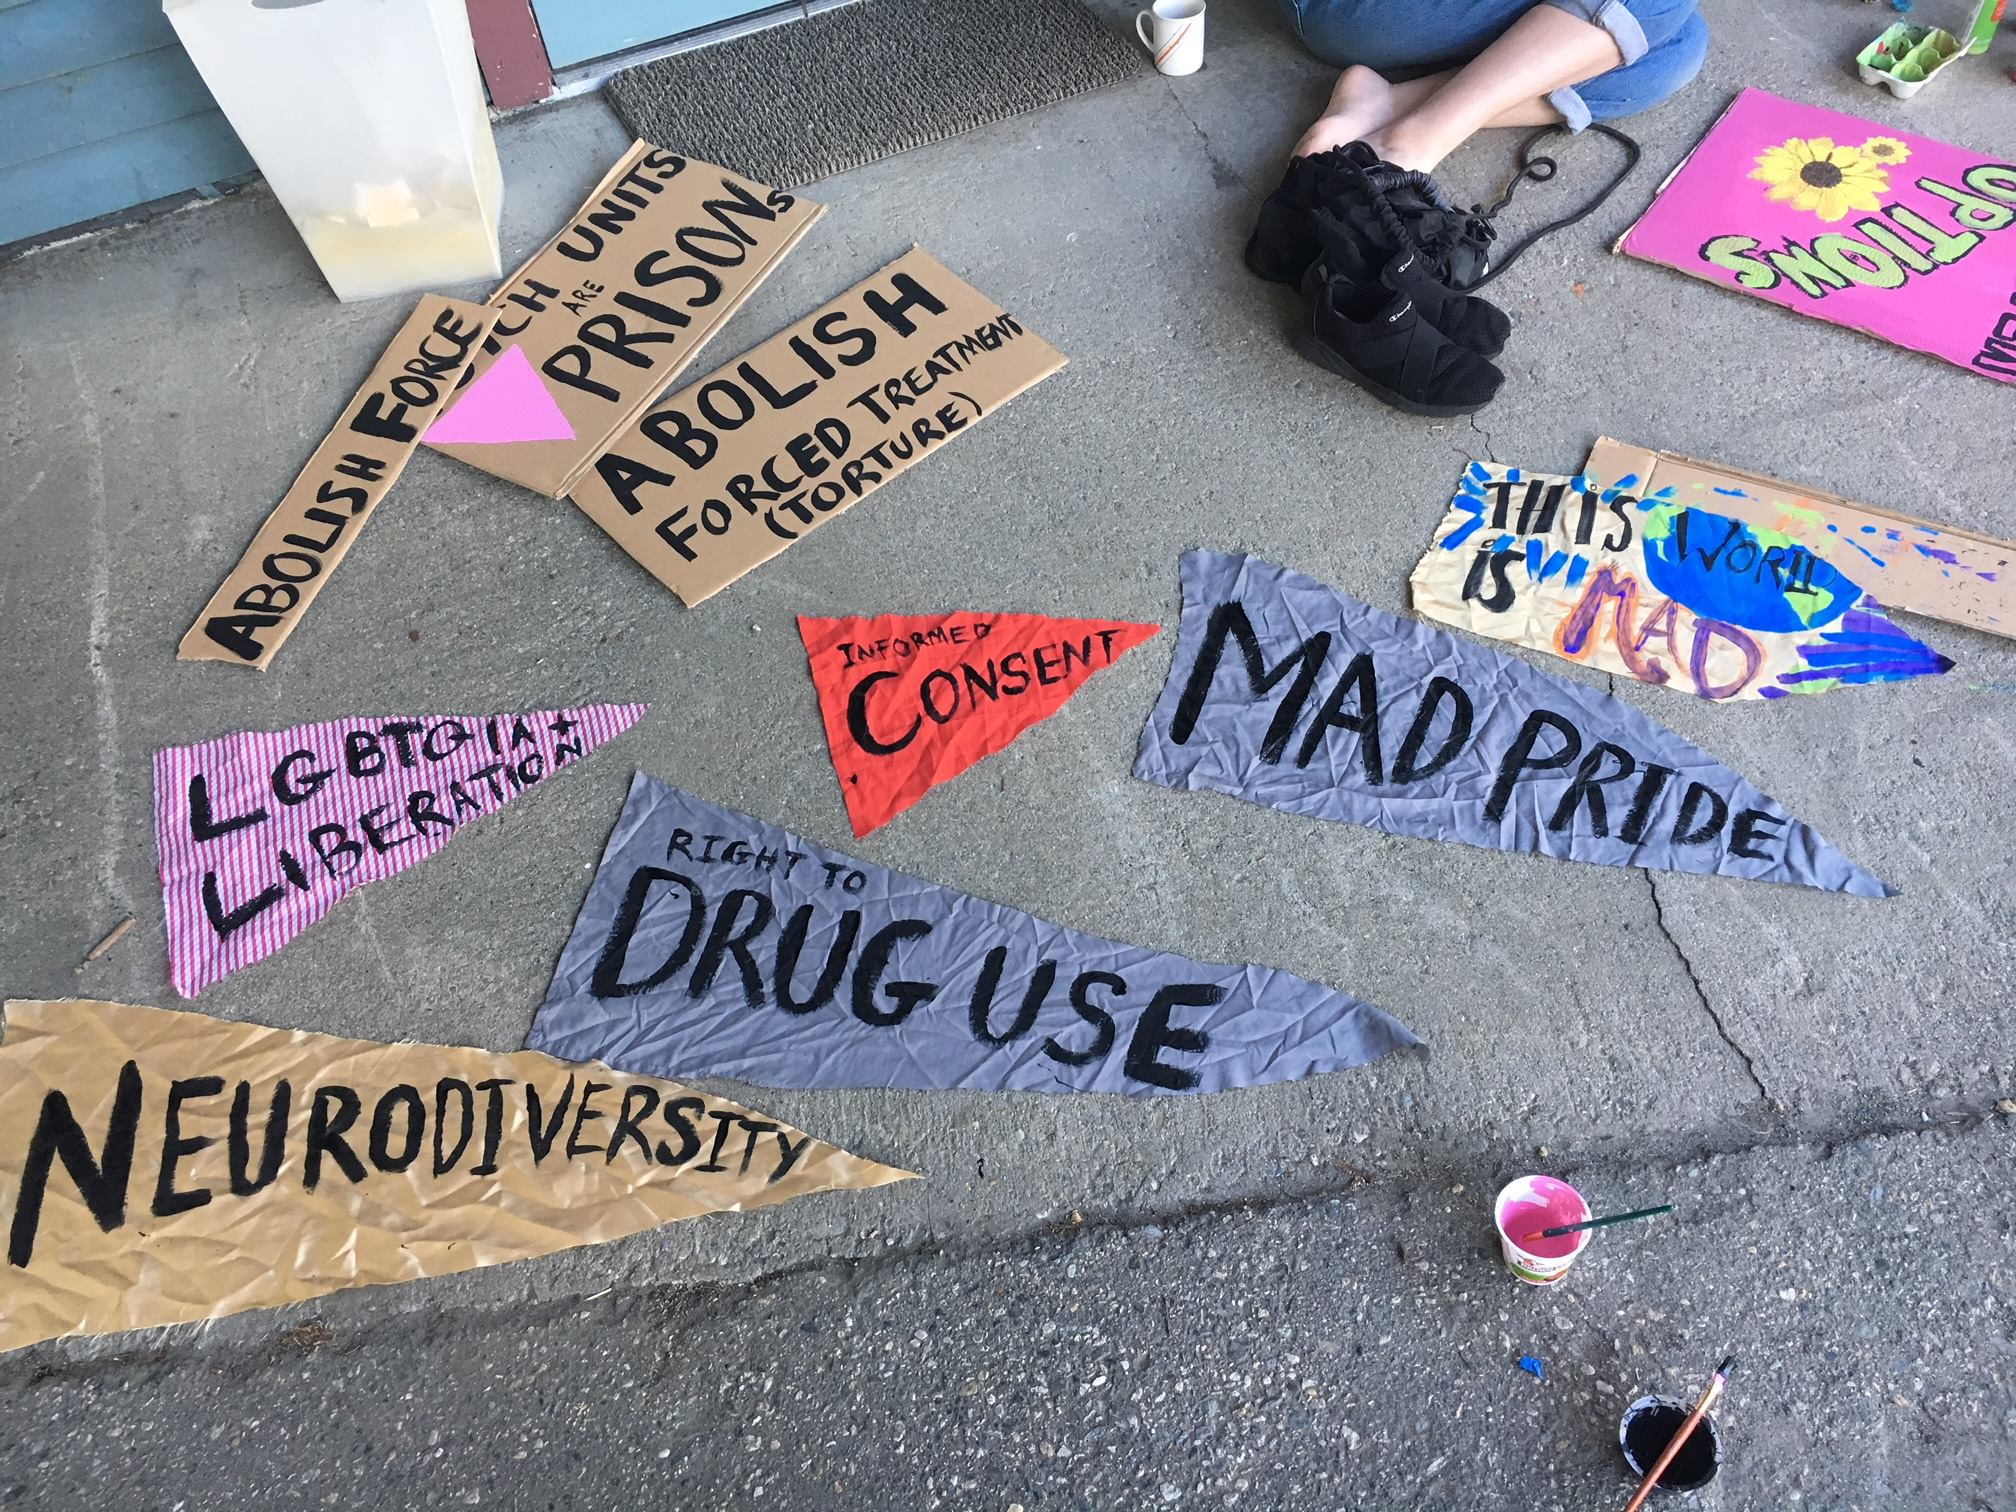 Signs from the Vermont Psychiatric Survivors Mad Pride March 2018